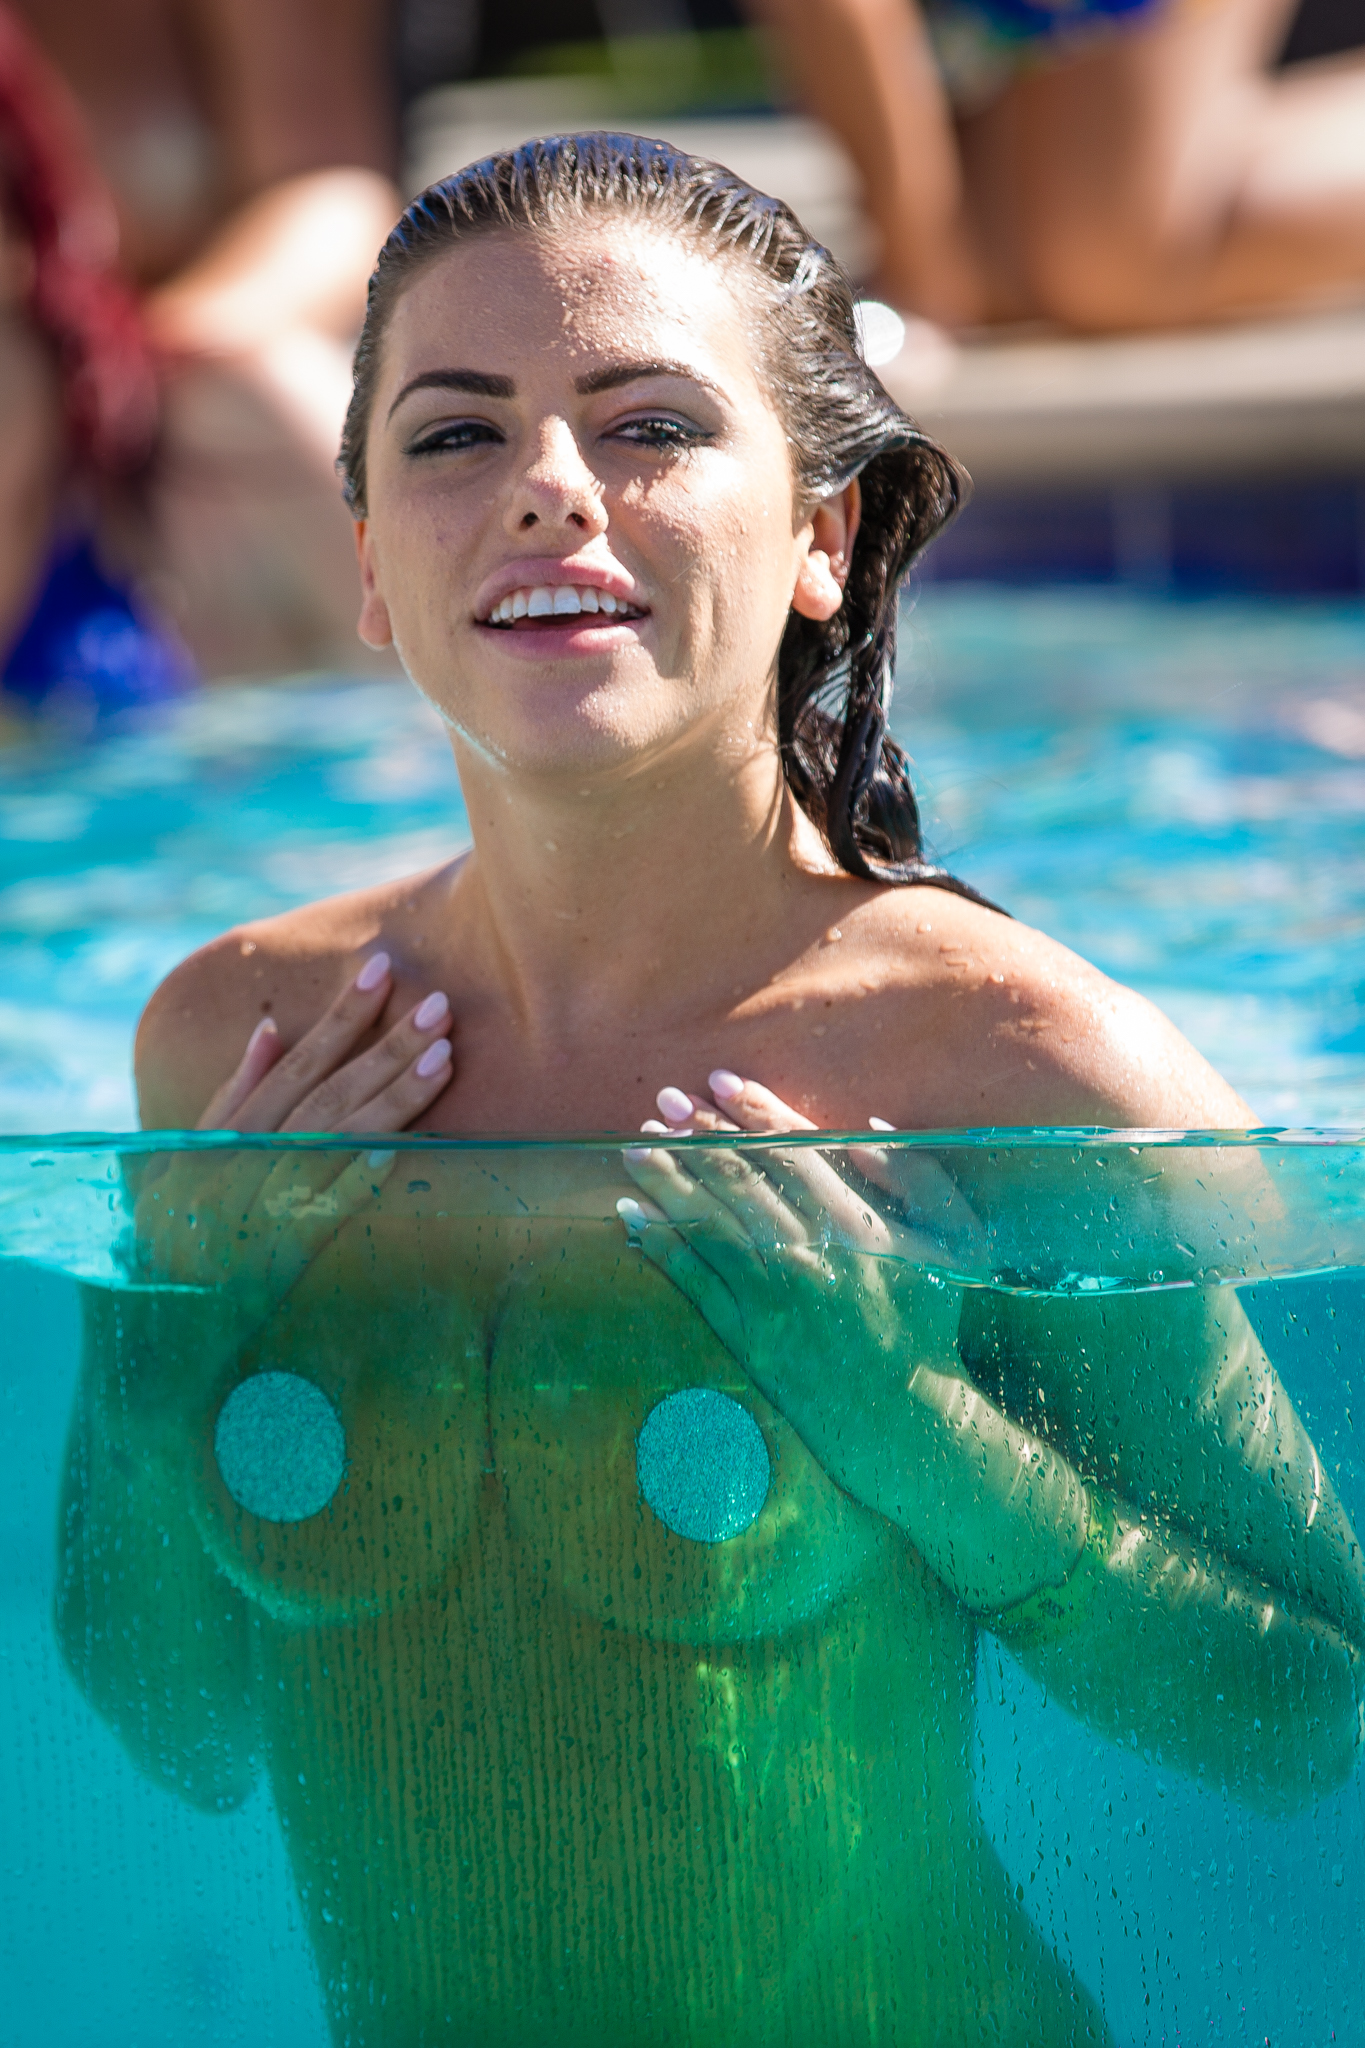 Adriana chechik in katy perry et remix - 3 part 4